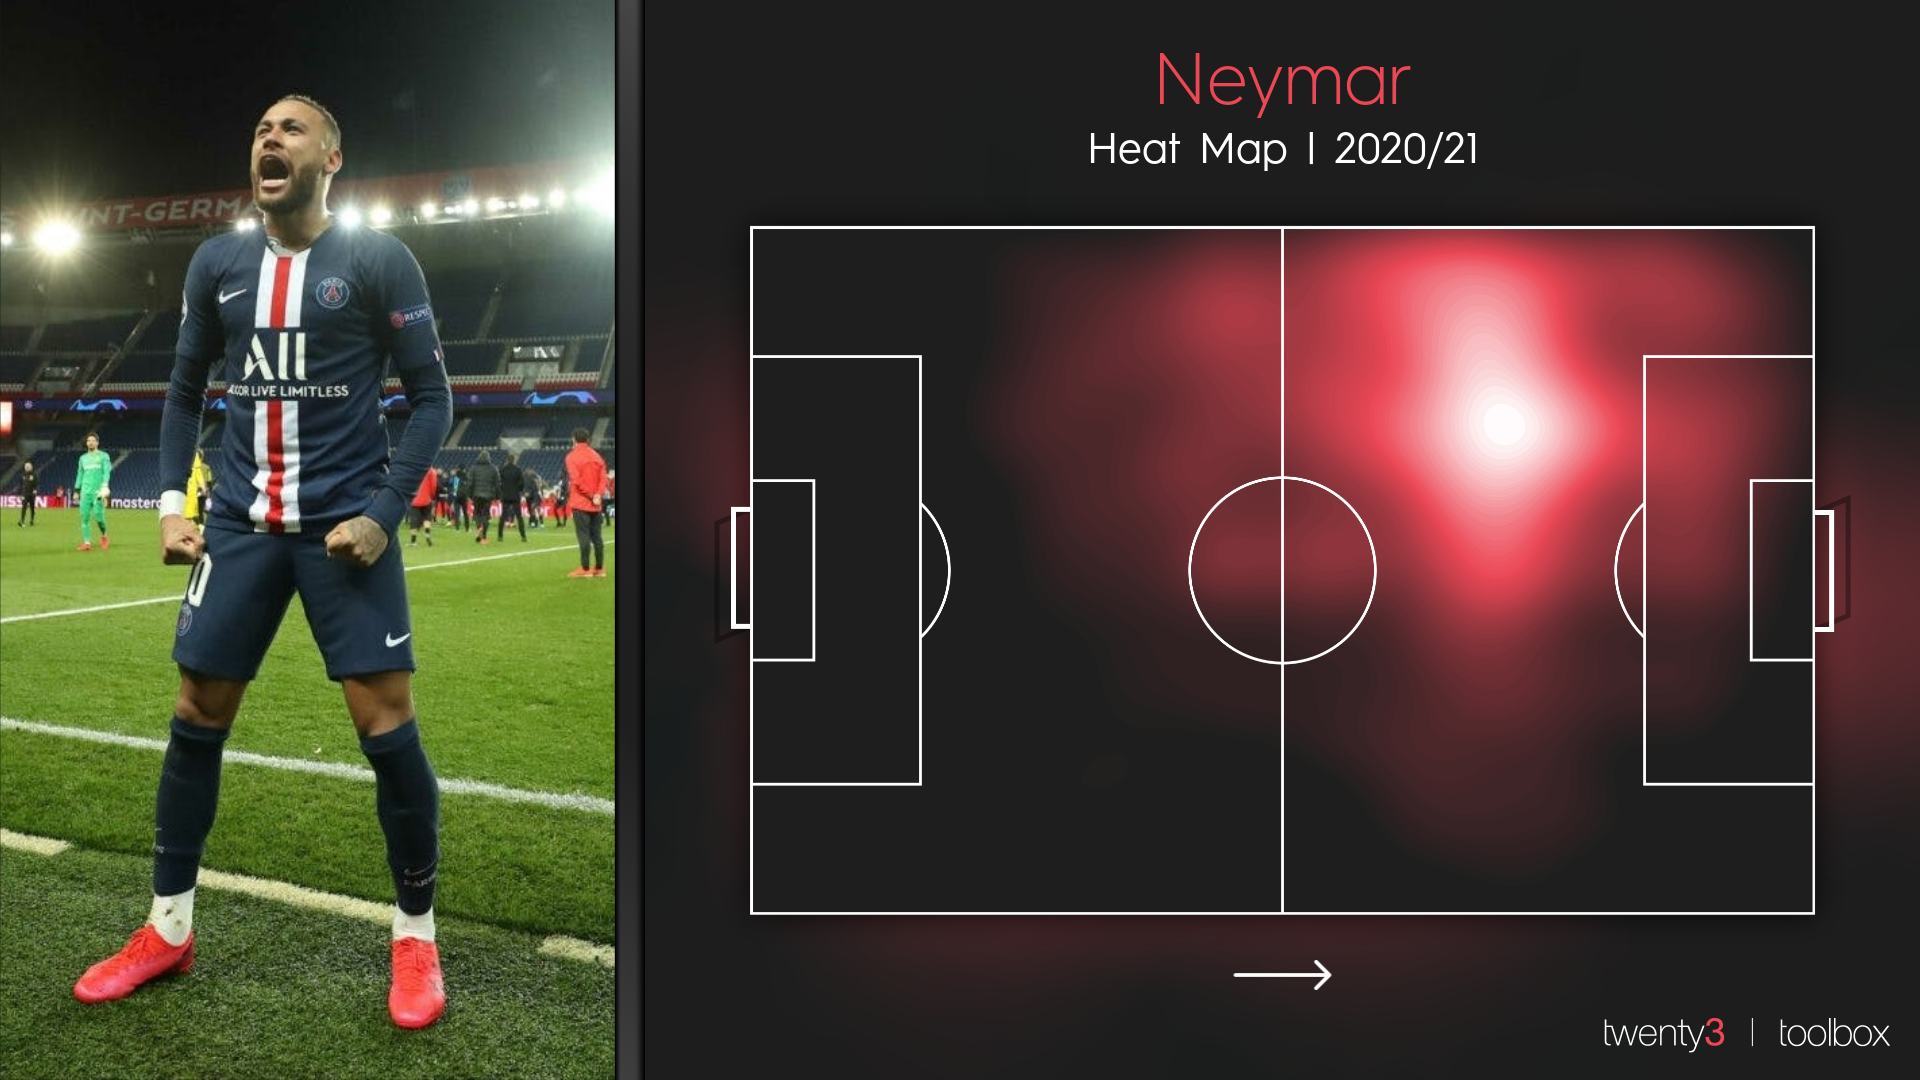 Neymar's heat map for PSG during the 2020/21 season in Ligue 1